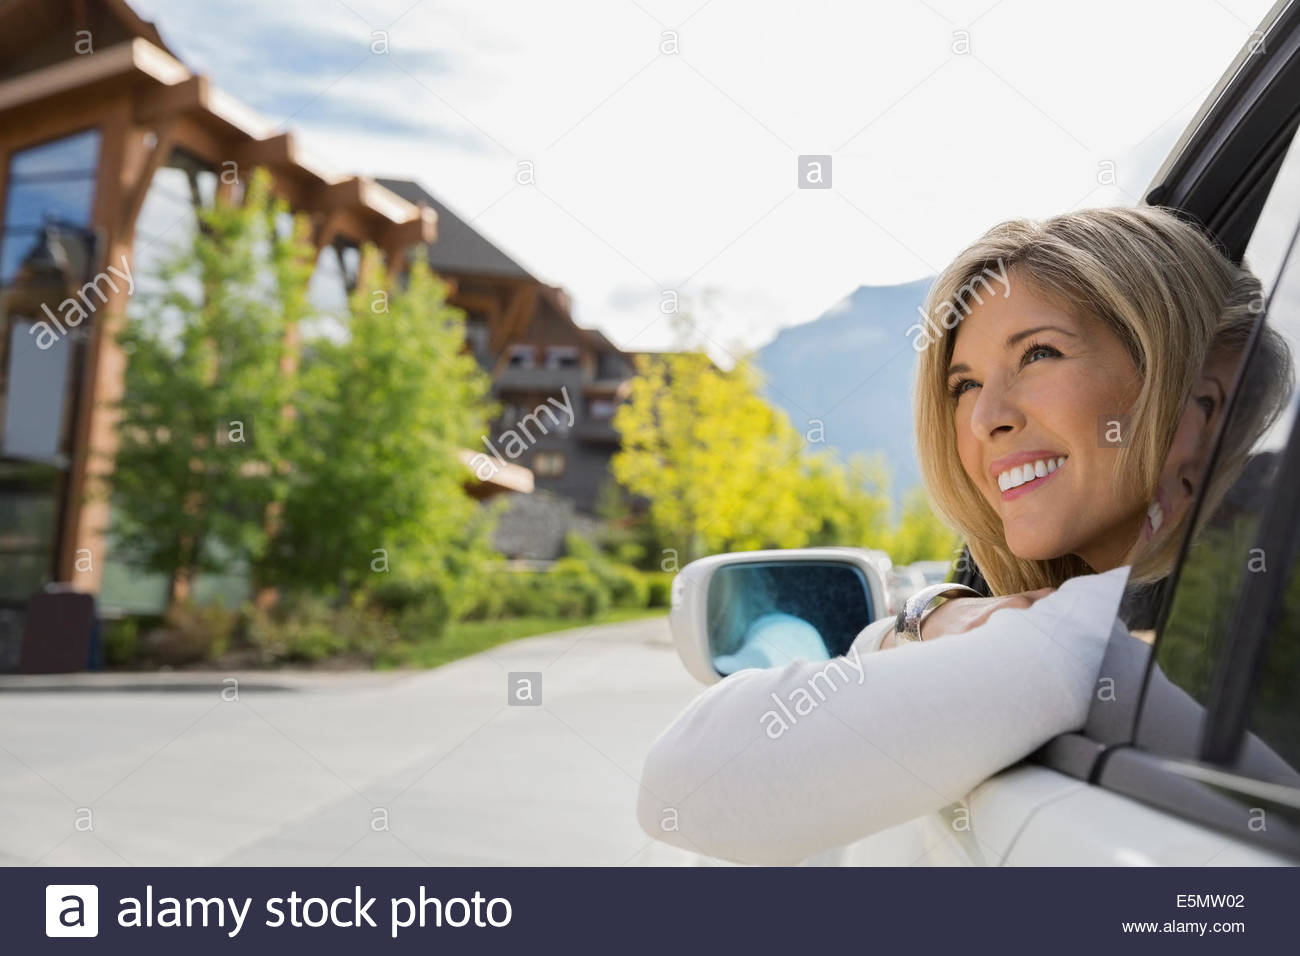 Smiling woman in car arriving at hotel - Stock Image